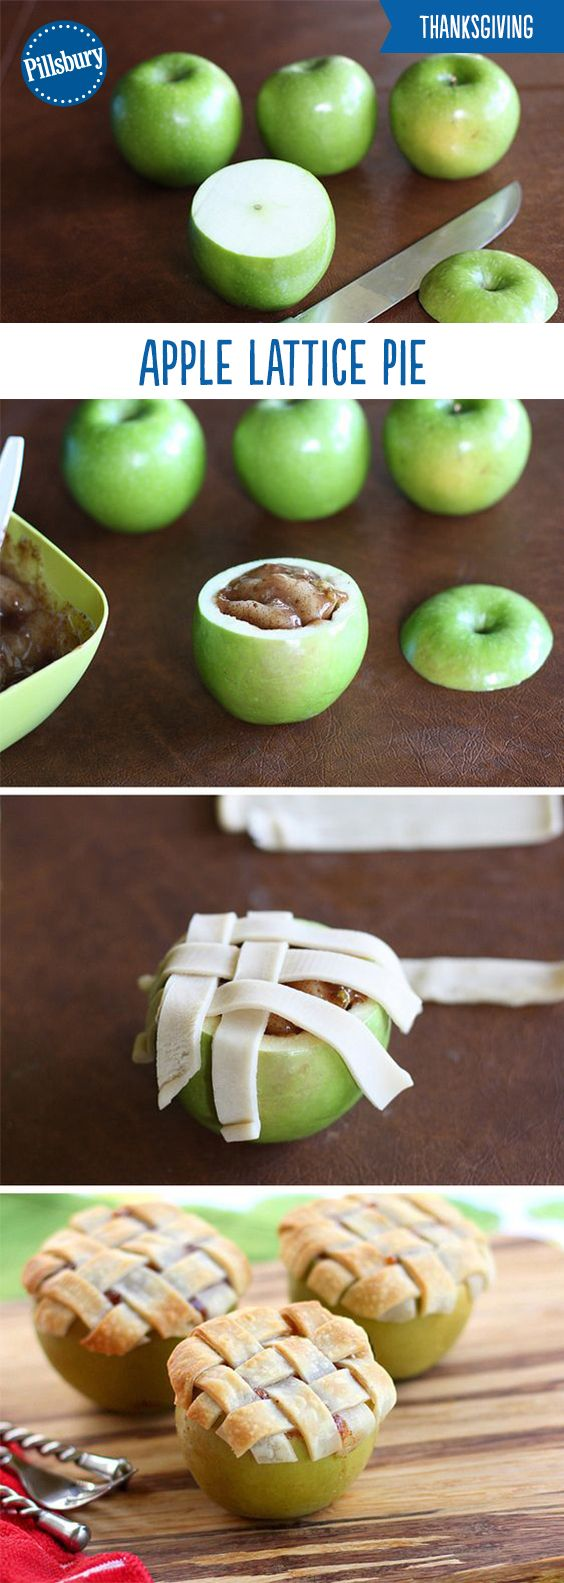 You're guaranteed to impress your guests by making this Apple Lattice Pie Baked in an Apple for Thanksgiving! It's super easy and will become everyone's favorite dessert this holiday season. Delicious apples filled with apple pie filling and topped with pie crust is a fun treat everyone will enjoy!